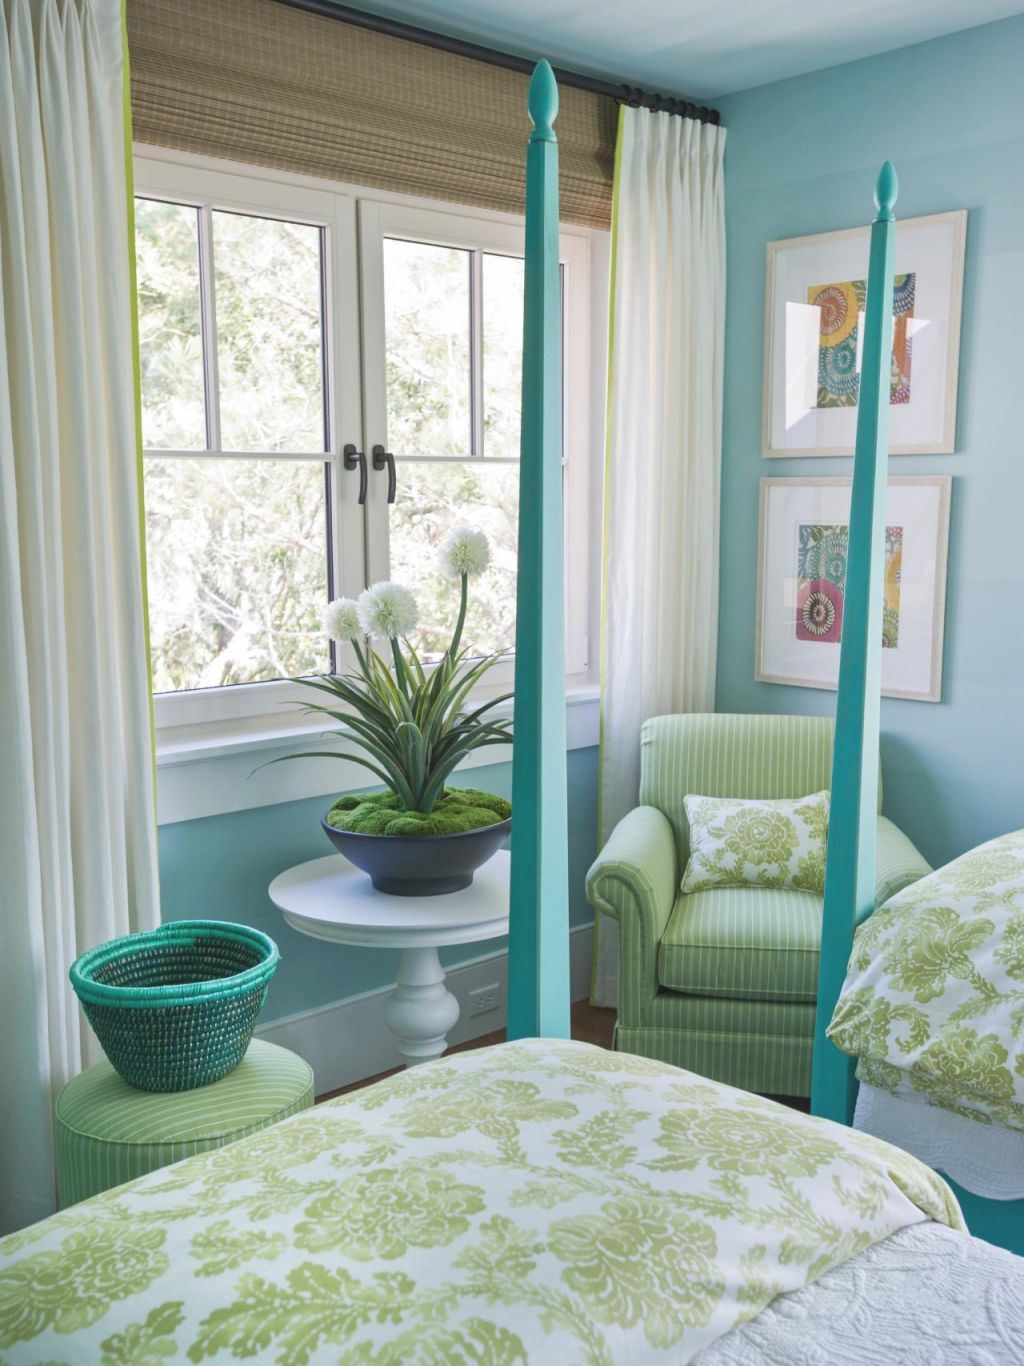 Blues & Greens - My Favorite Color Combo - Addicted 2 within Blue And Green Bedroom Decorating Ideas